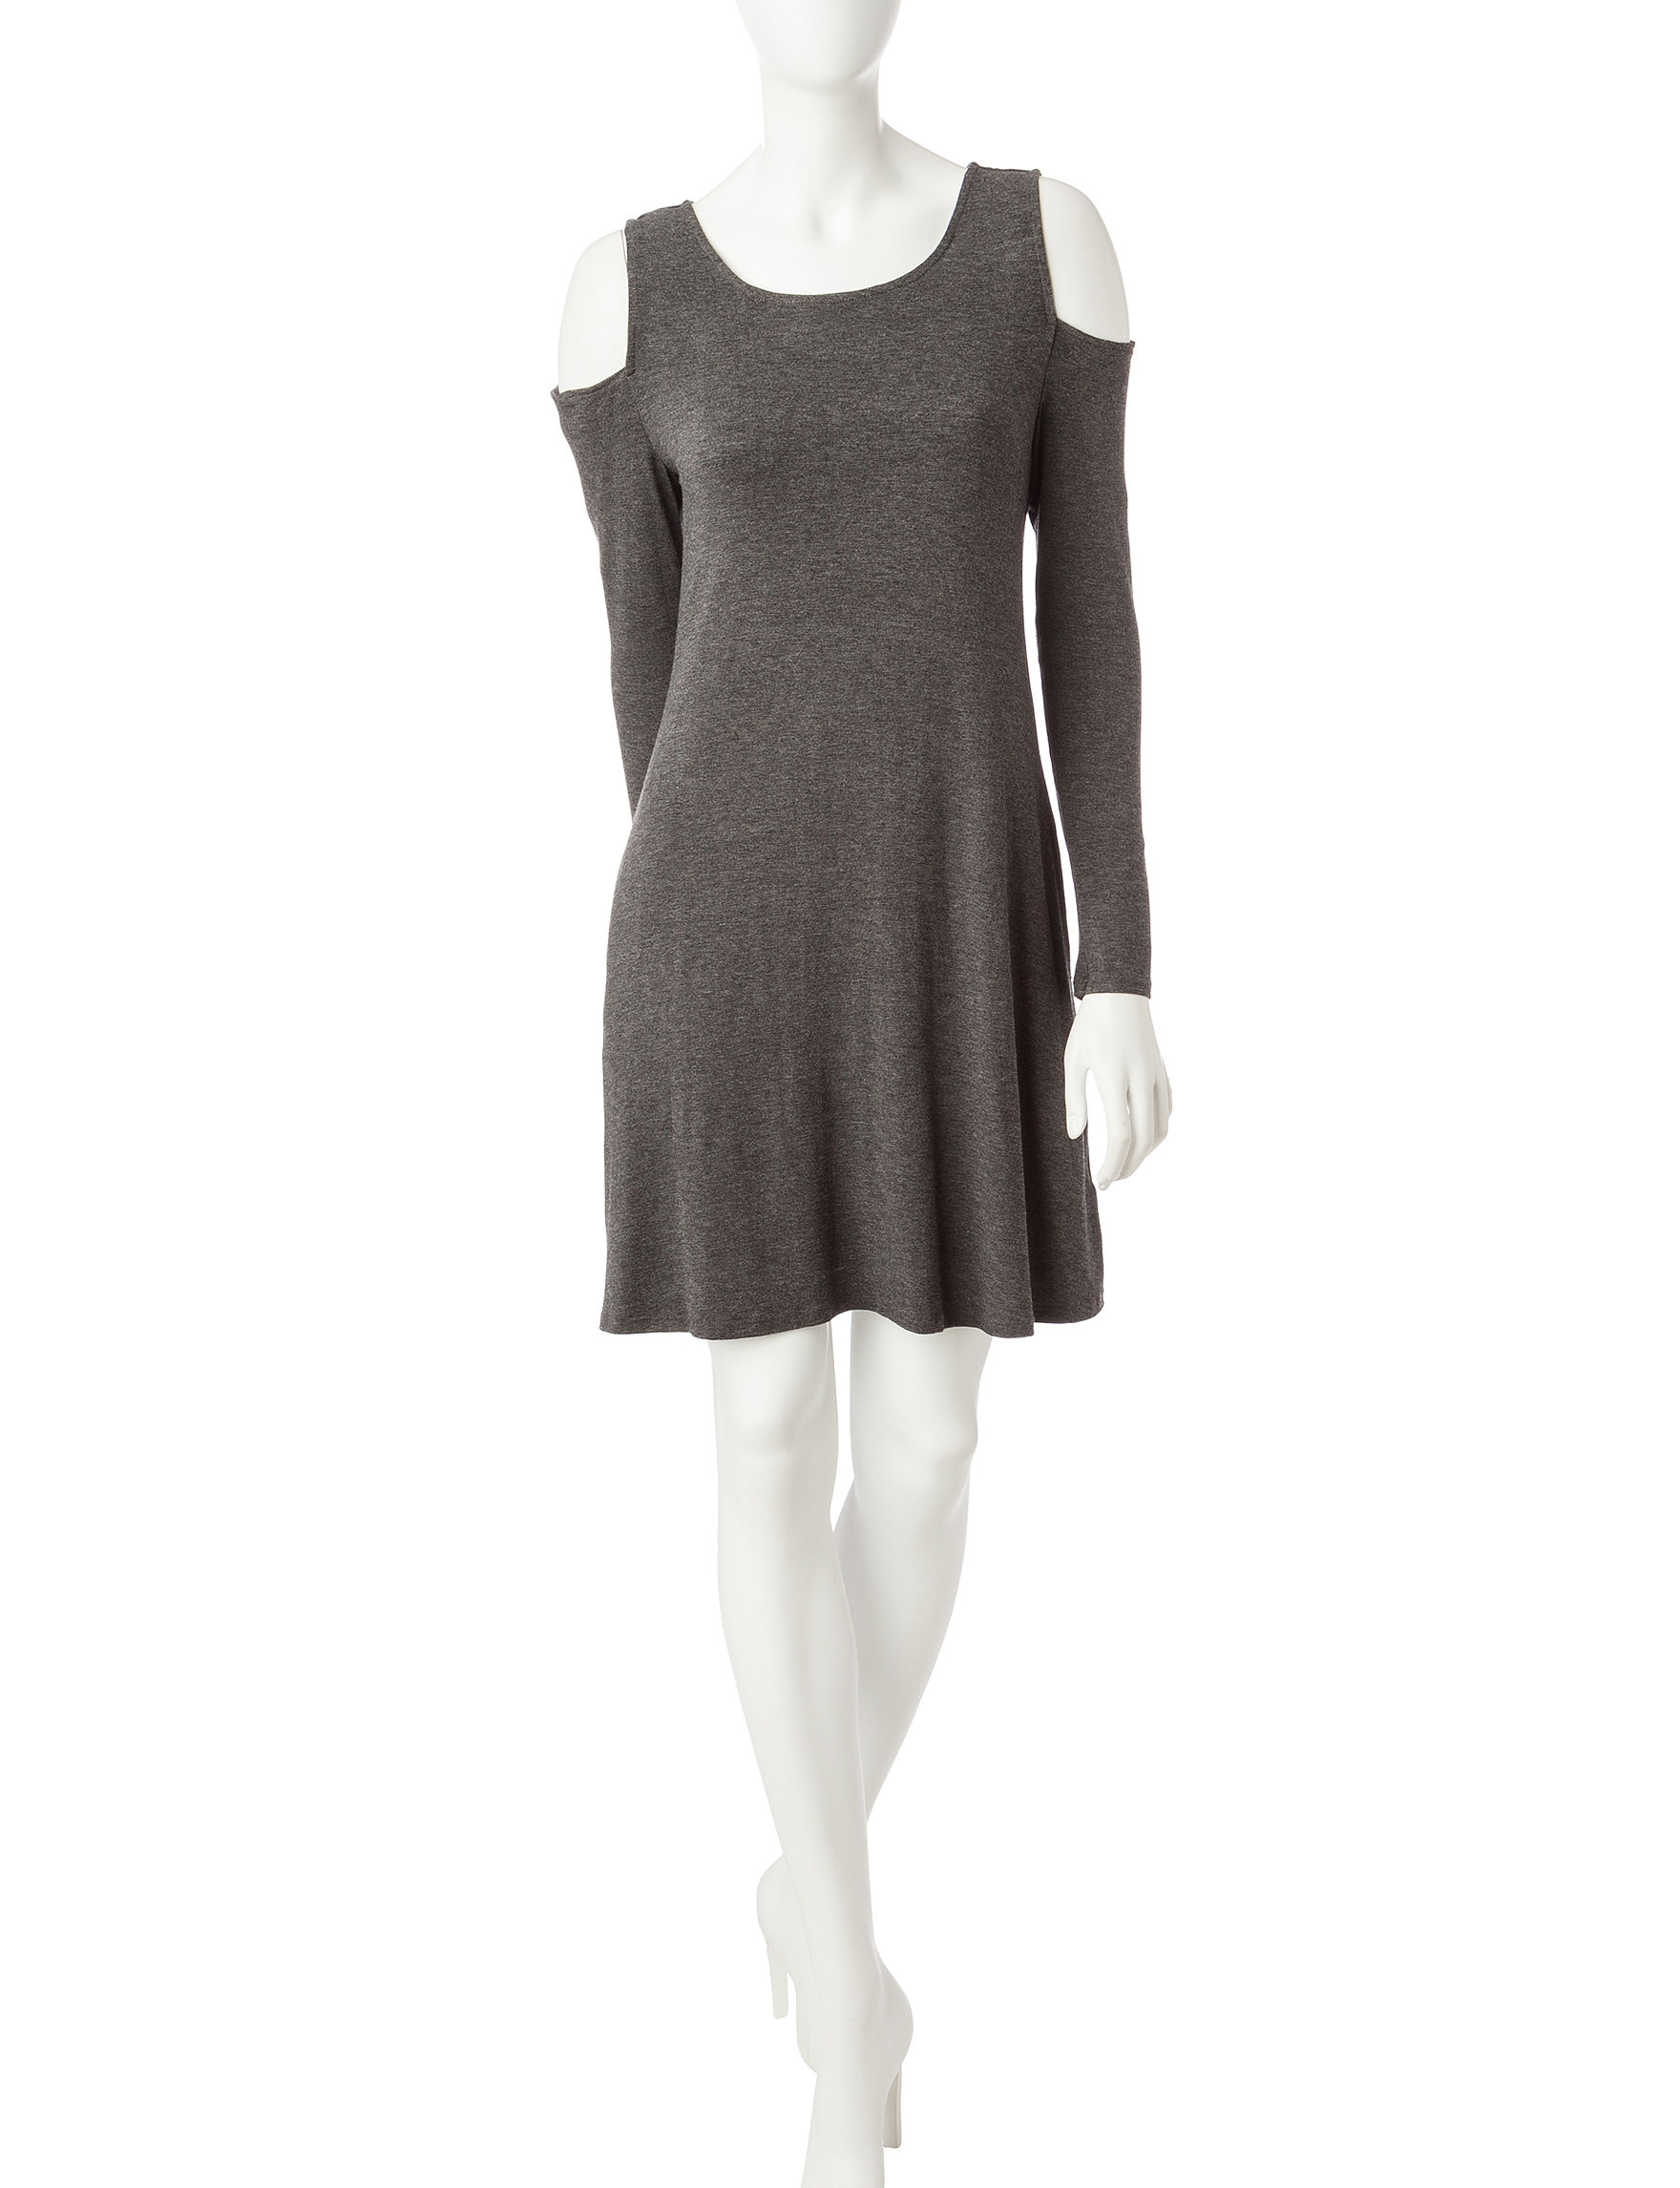 A. Byer Charcoal Everyday & Casual A-line Dresses